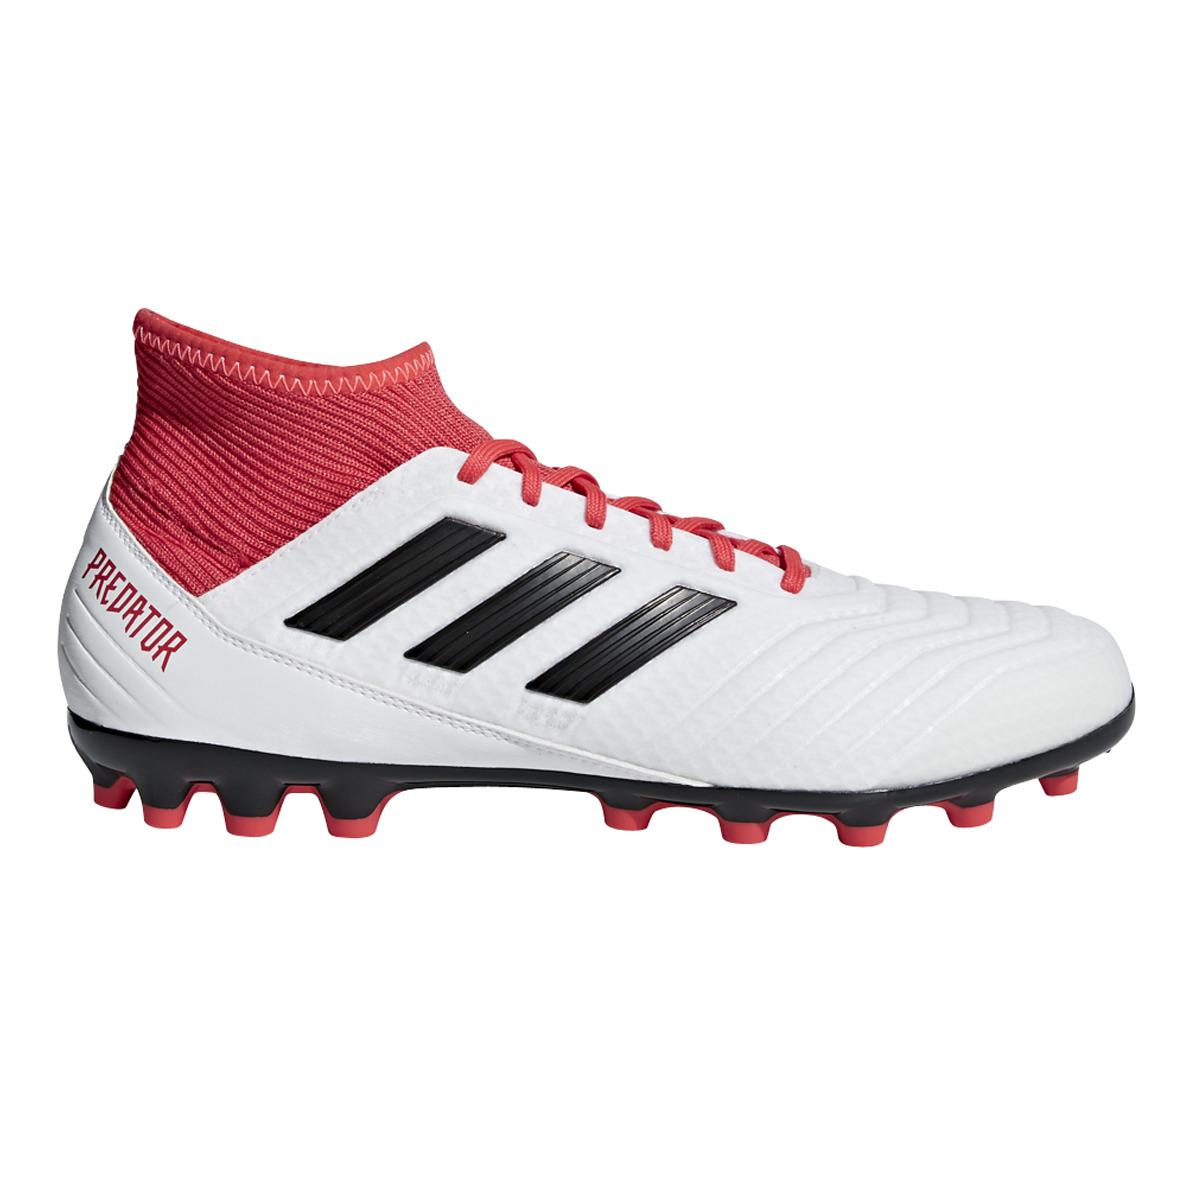 separation shoes 2868d 04d97 adidas Predator 18.3 Ag Football Boots in White for Men - Lyst